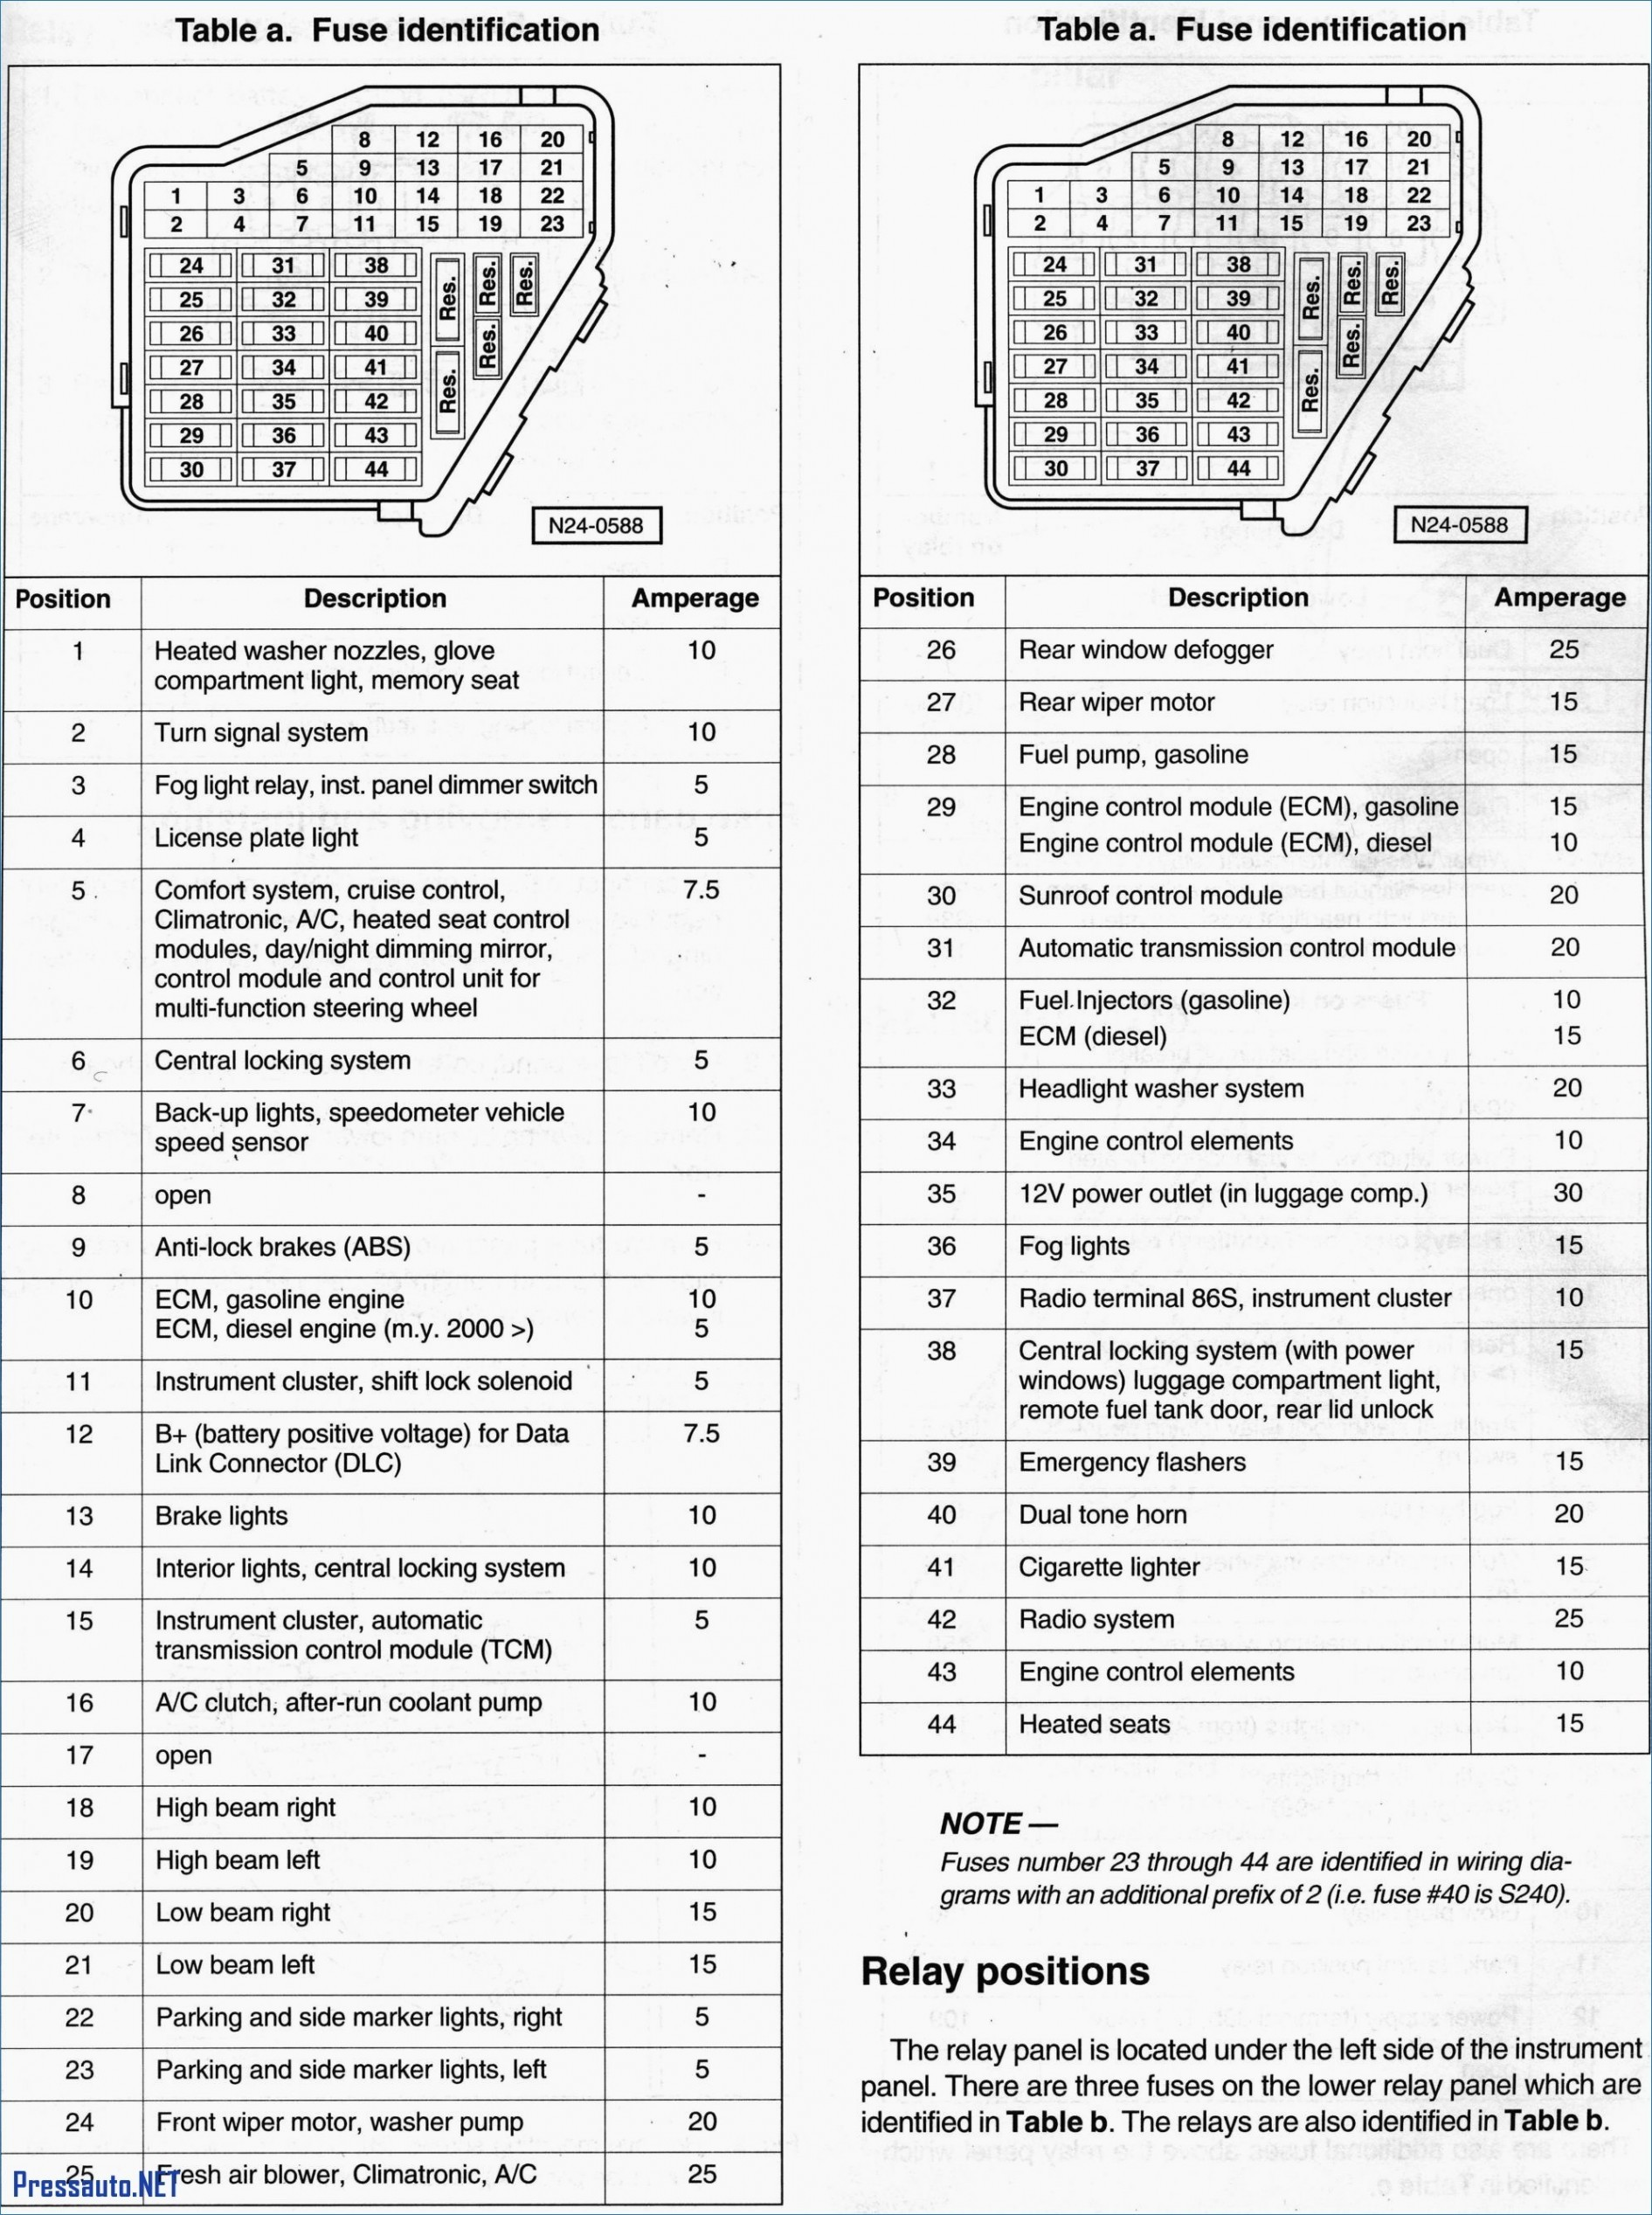 Fuse Box For 2000 Audi A6 - 1996 Cadillac Deville Wiring Diagram Schematic  for Wiring Diagram SchematicsWiring Diagram Schematics